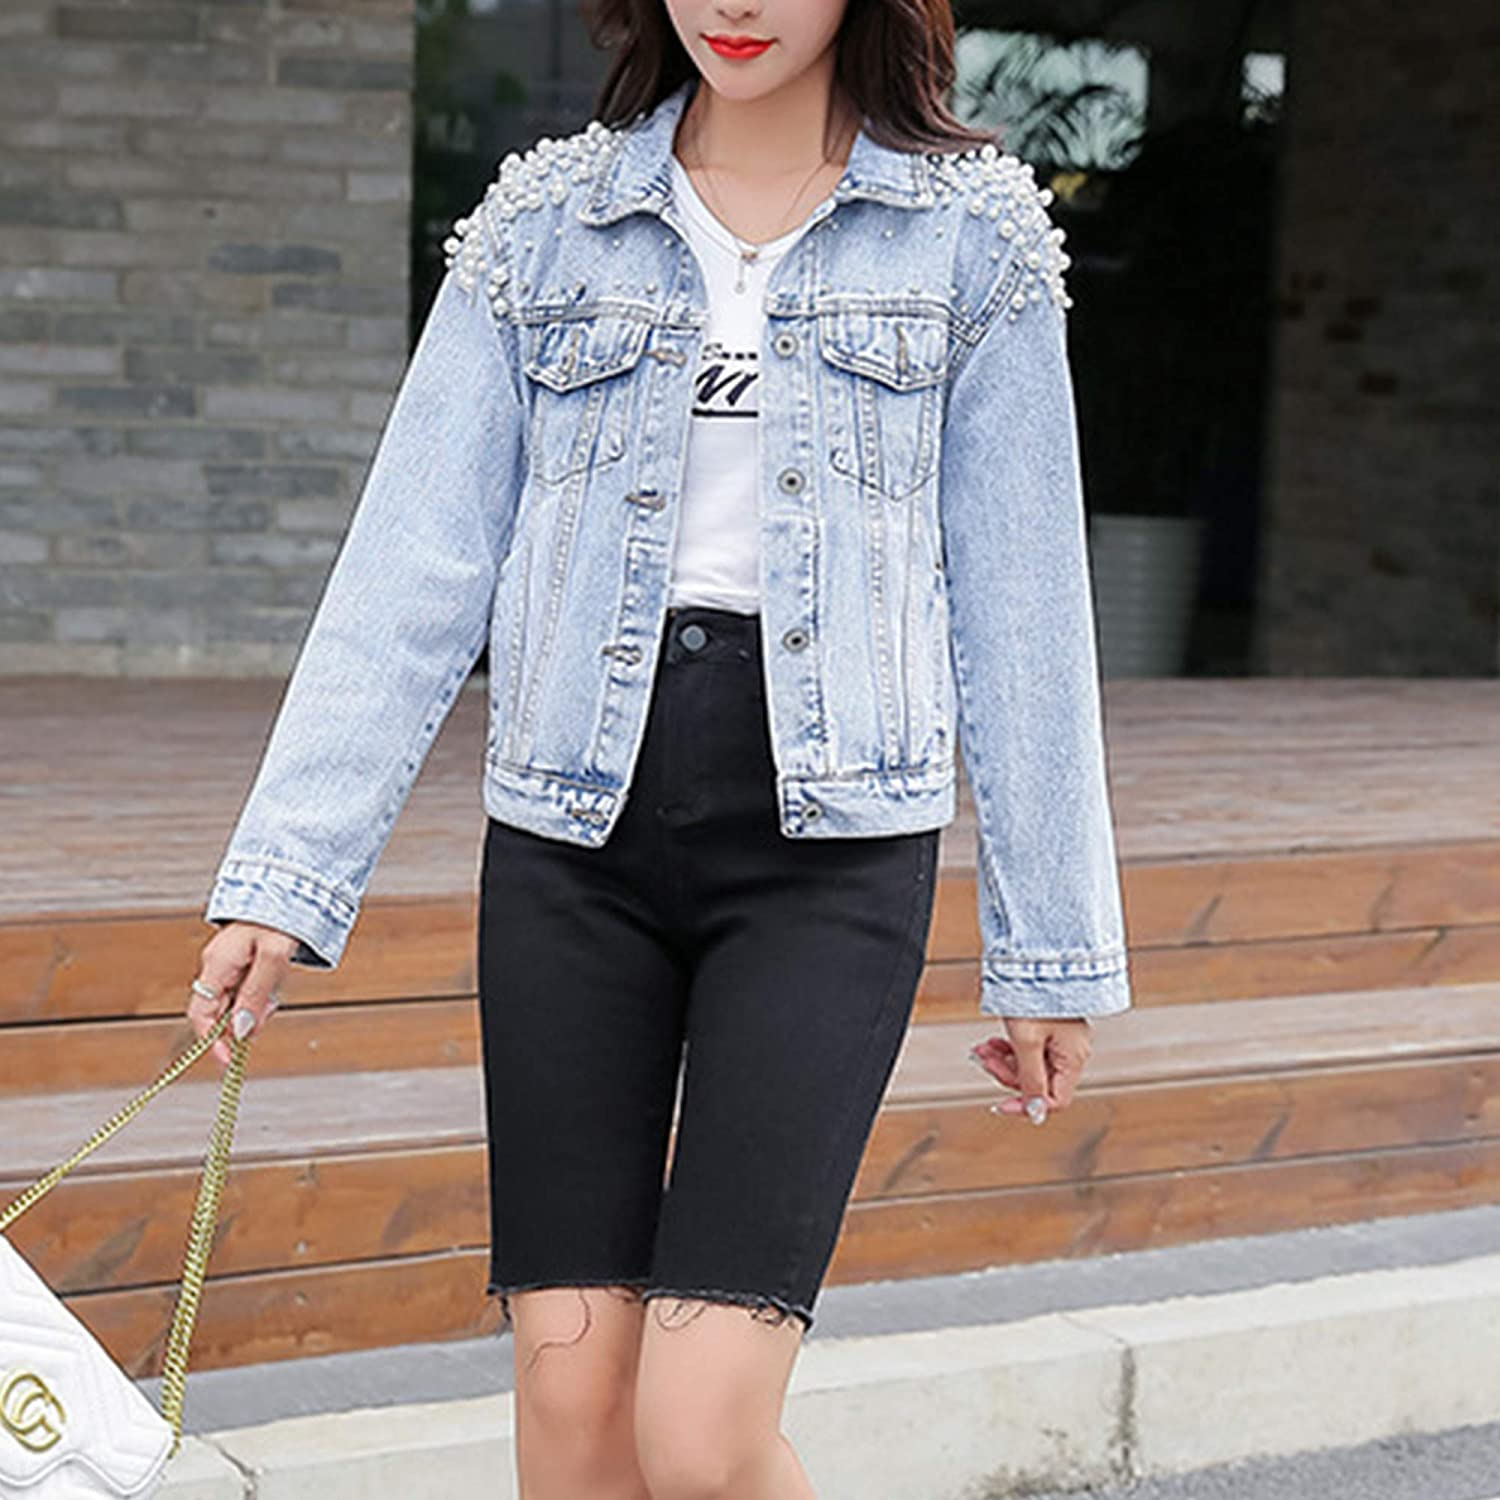 Hixiaohe Women's Embroidered Pearls Beading Denim Jacket Vintage Washed Jean Coat